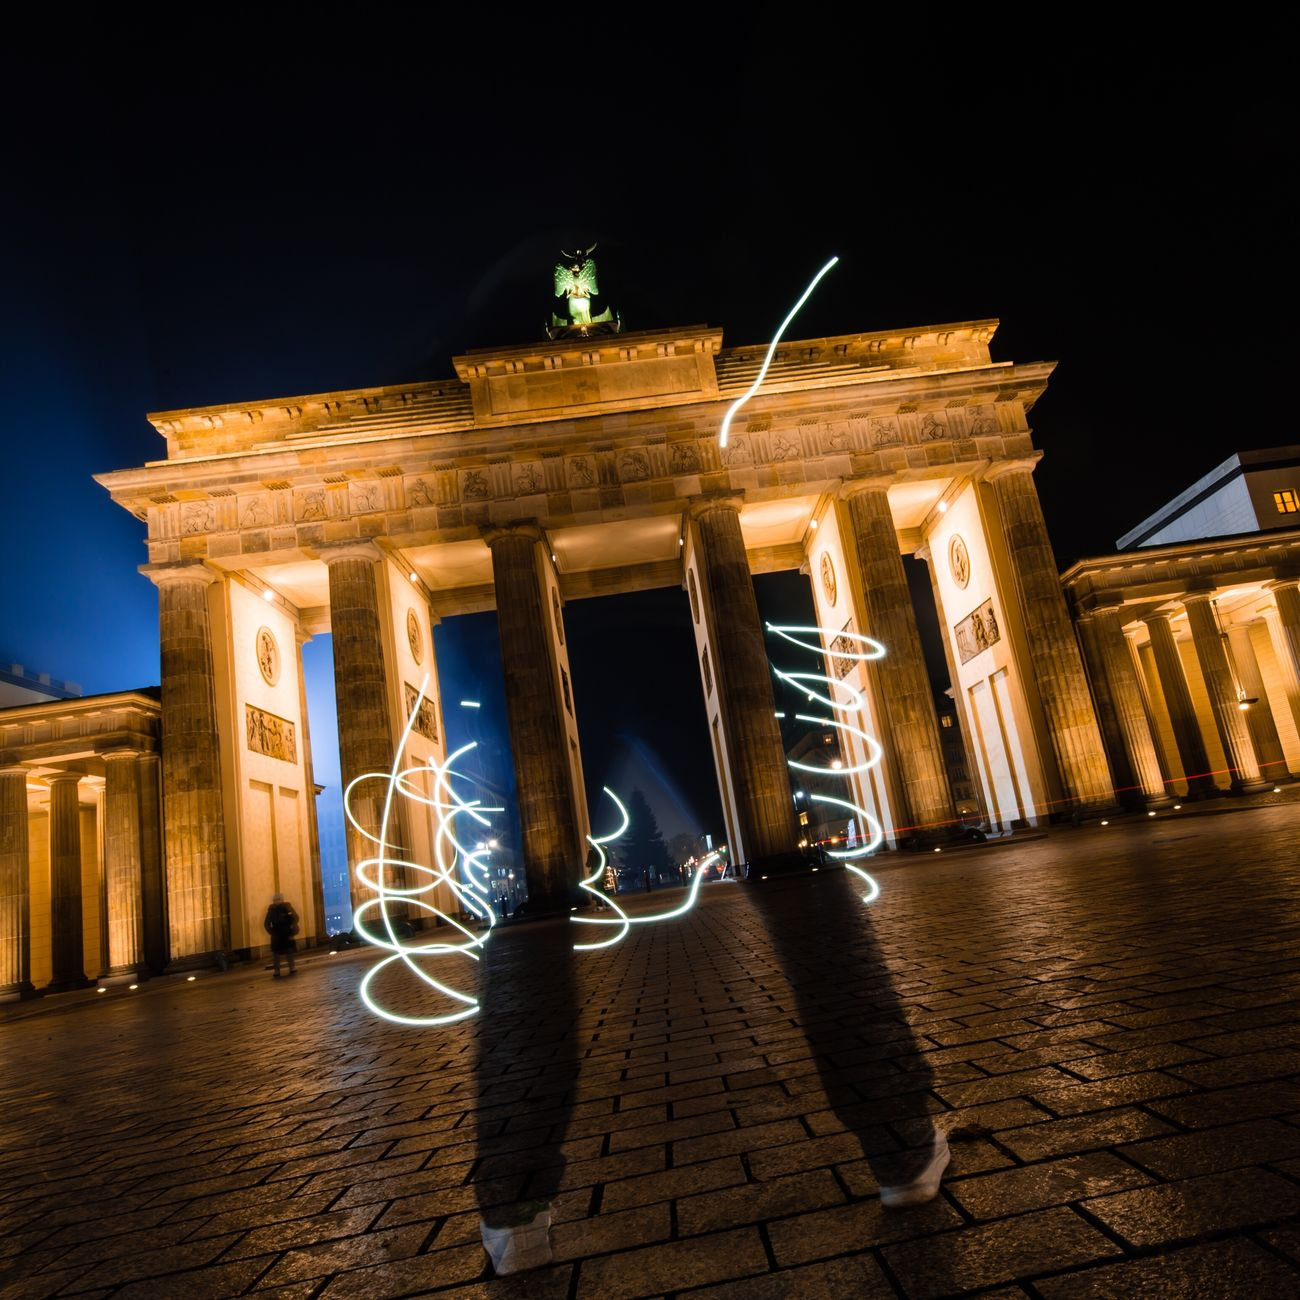 Sign it with Light | captured in Berlin | edited version on Instagram Illuminated Night City Architectural Column Architecture Built Structure City Gate Building Exterior No People Outdoors Sky Pediment Capture Berlin Berlin Long Exposure Nightphotography Brandenburger Tor Brandenburg Gate